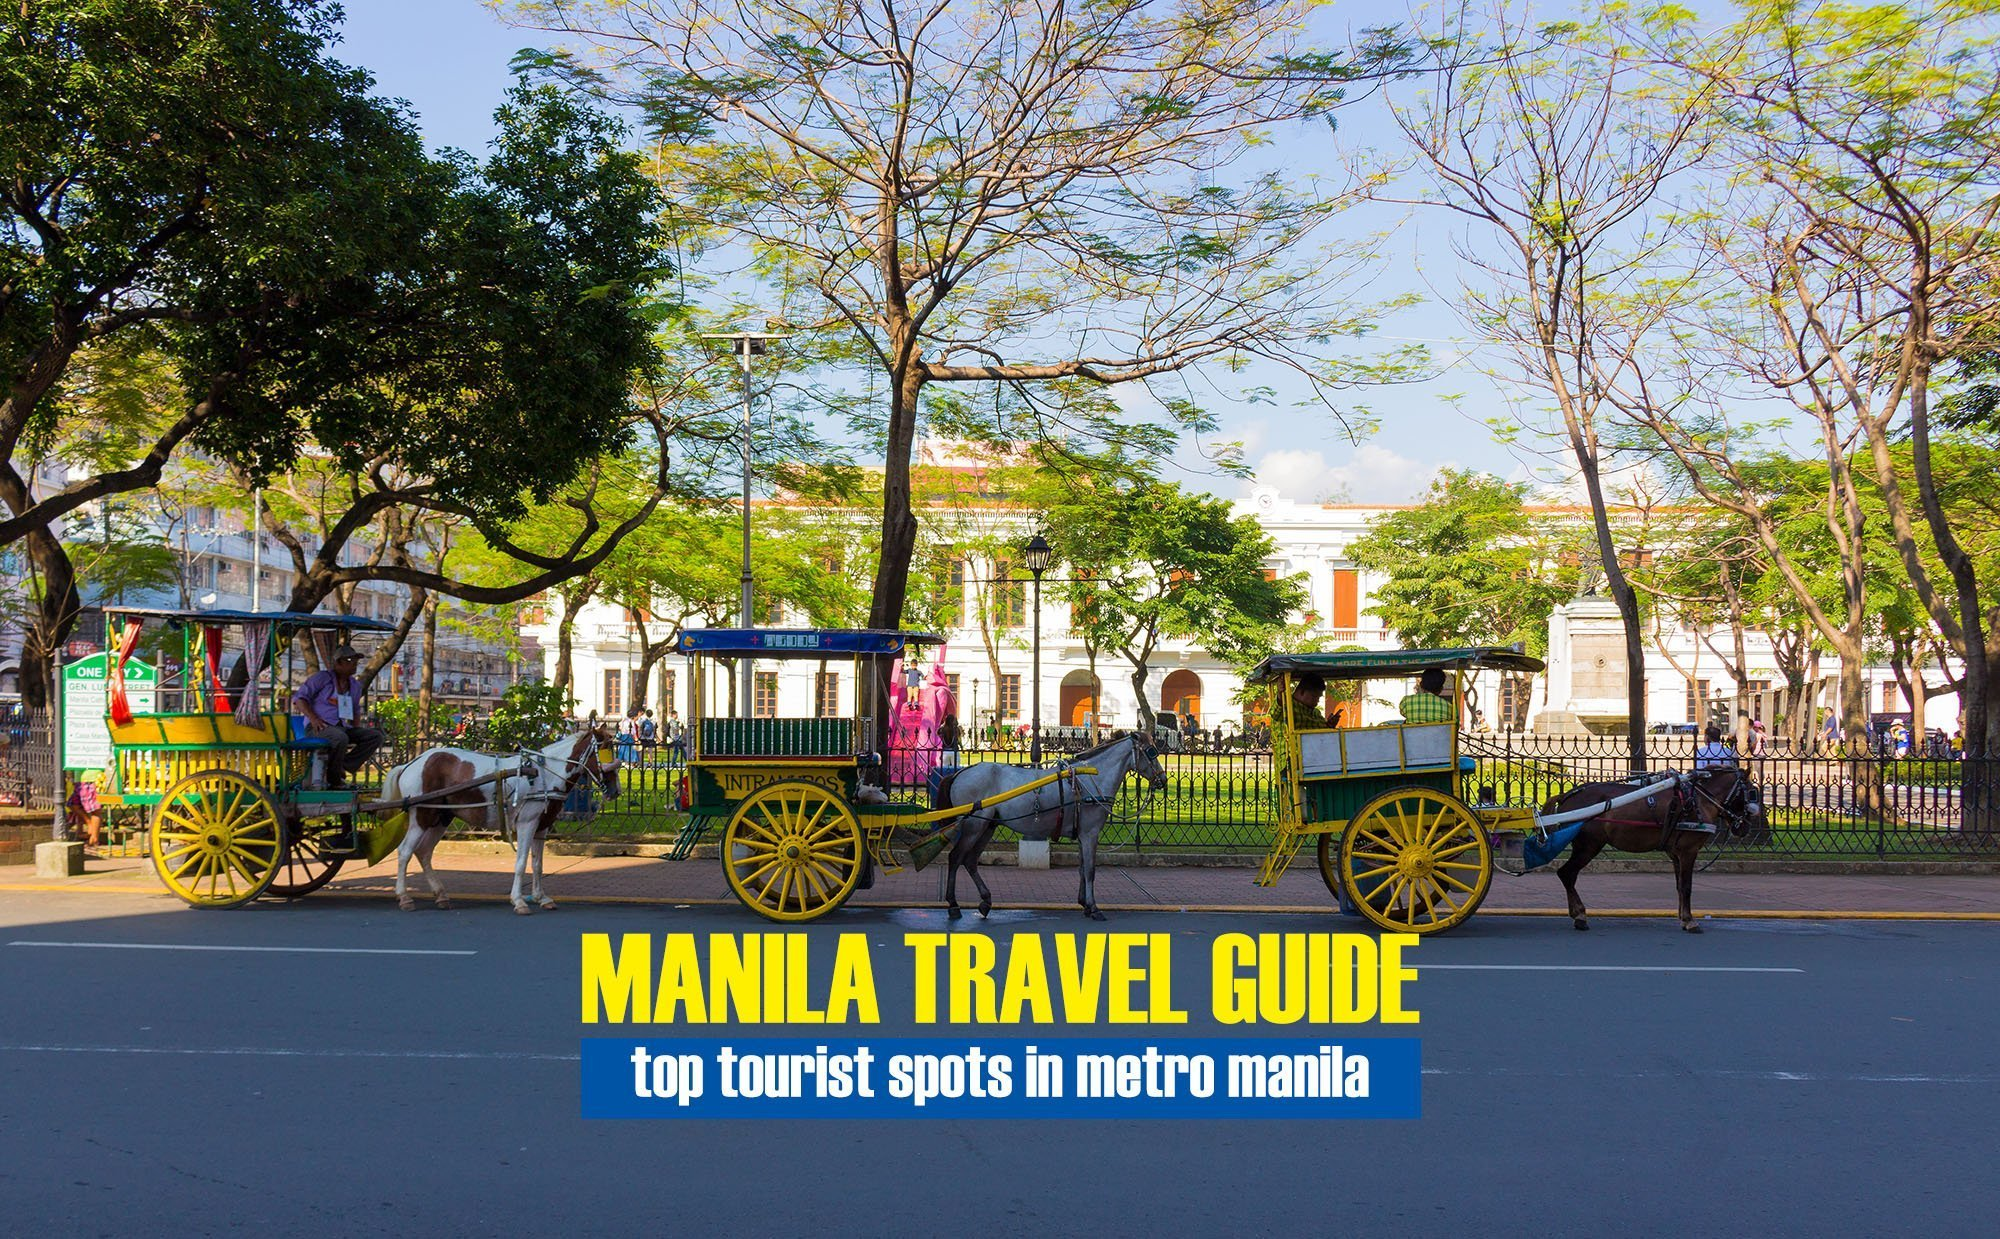 MANILA ITINERARY: How to Spend 24 hours in Manila?